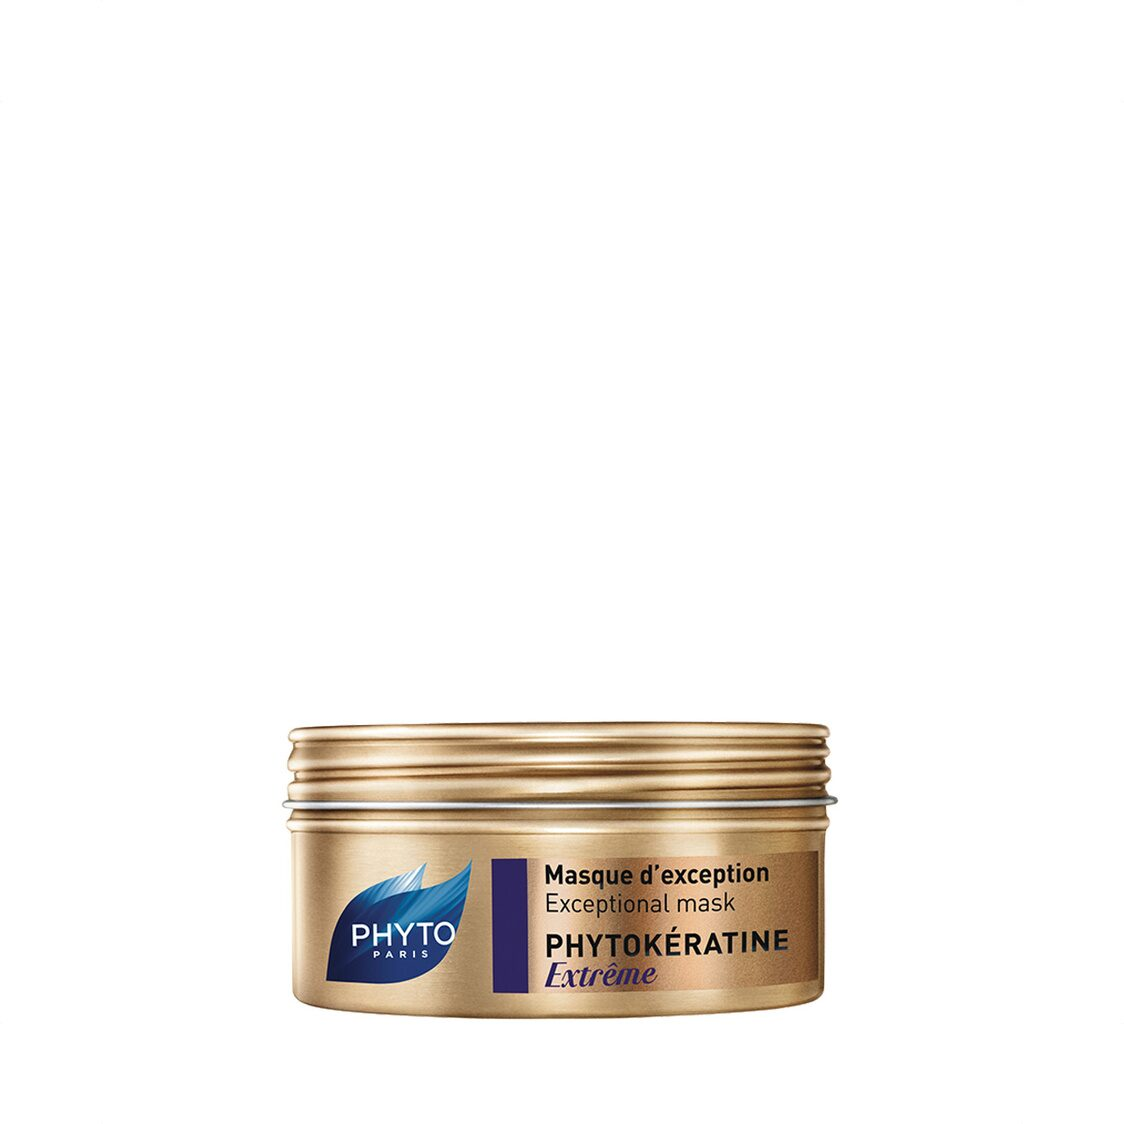 Phytokeratine Extreme Exceptional Mask 200ml P242